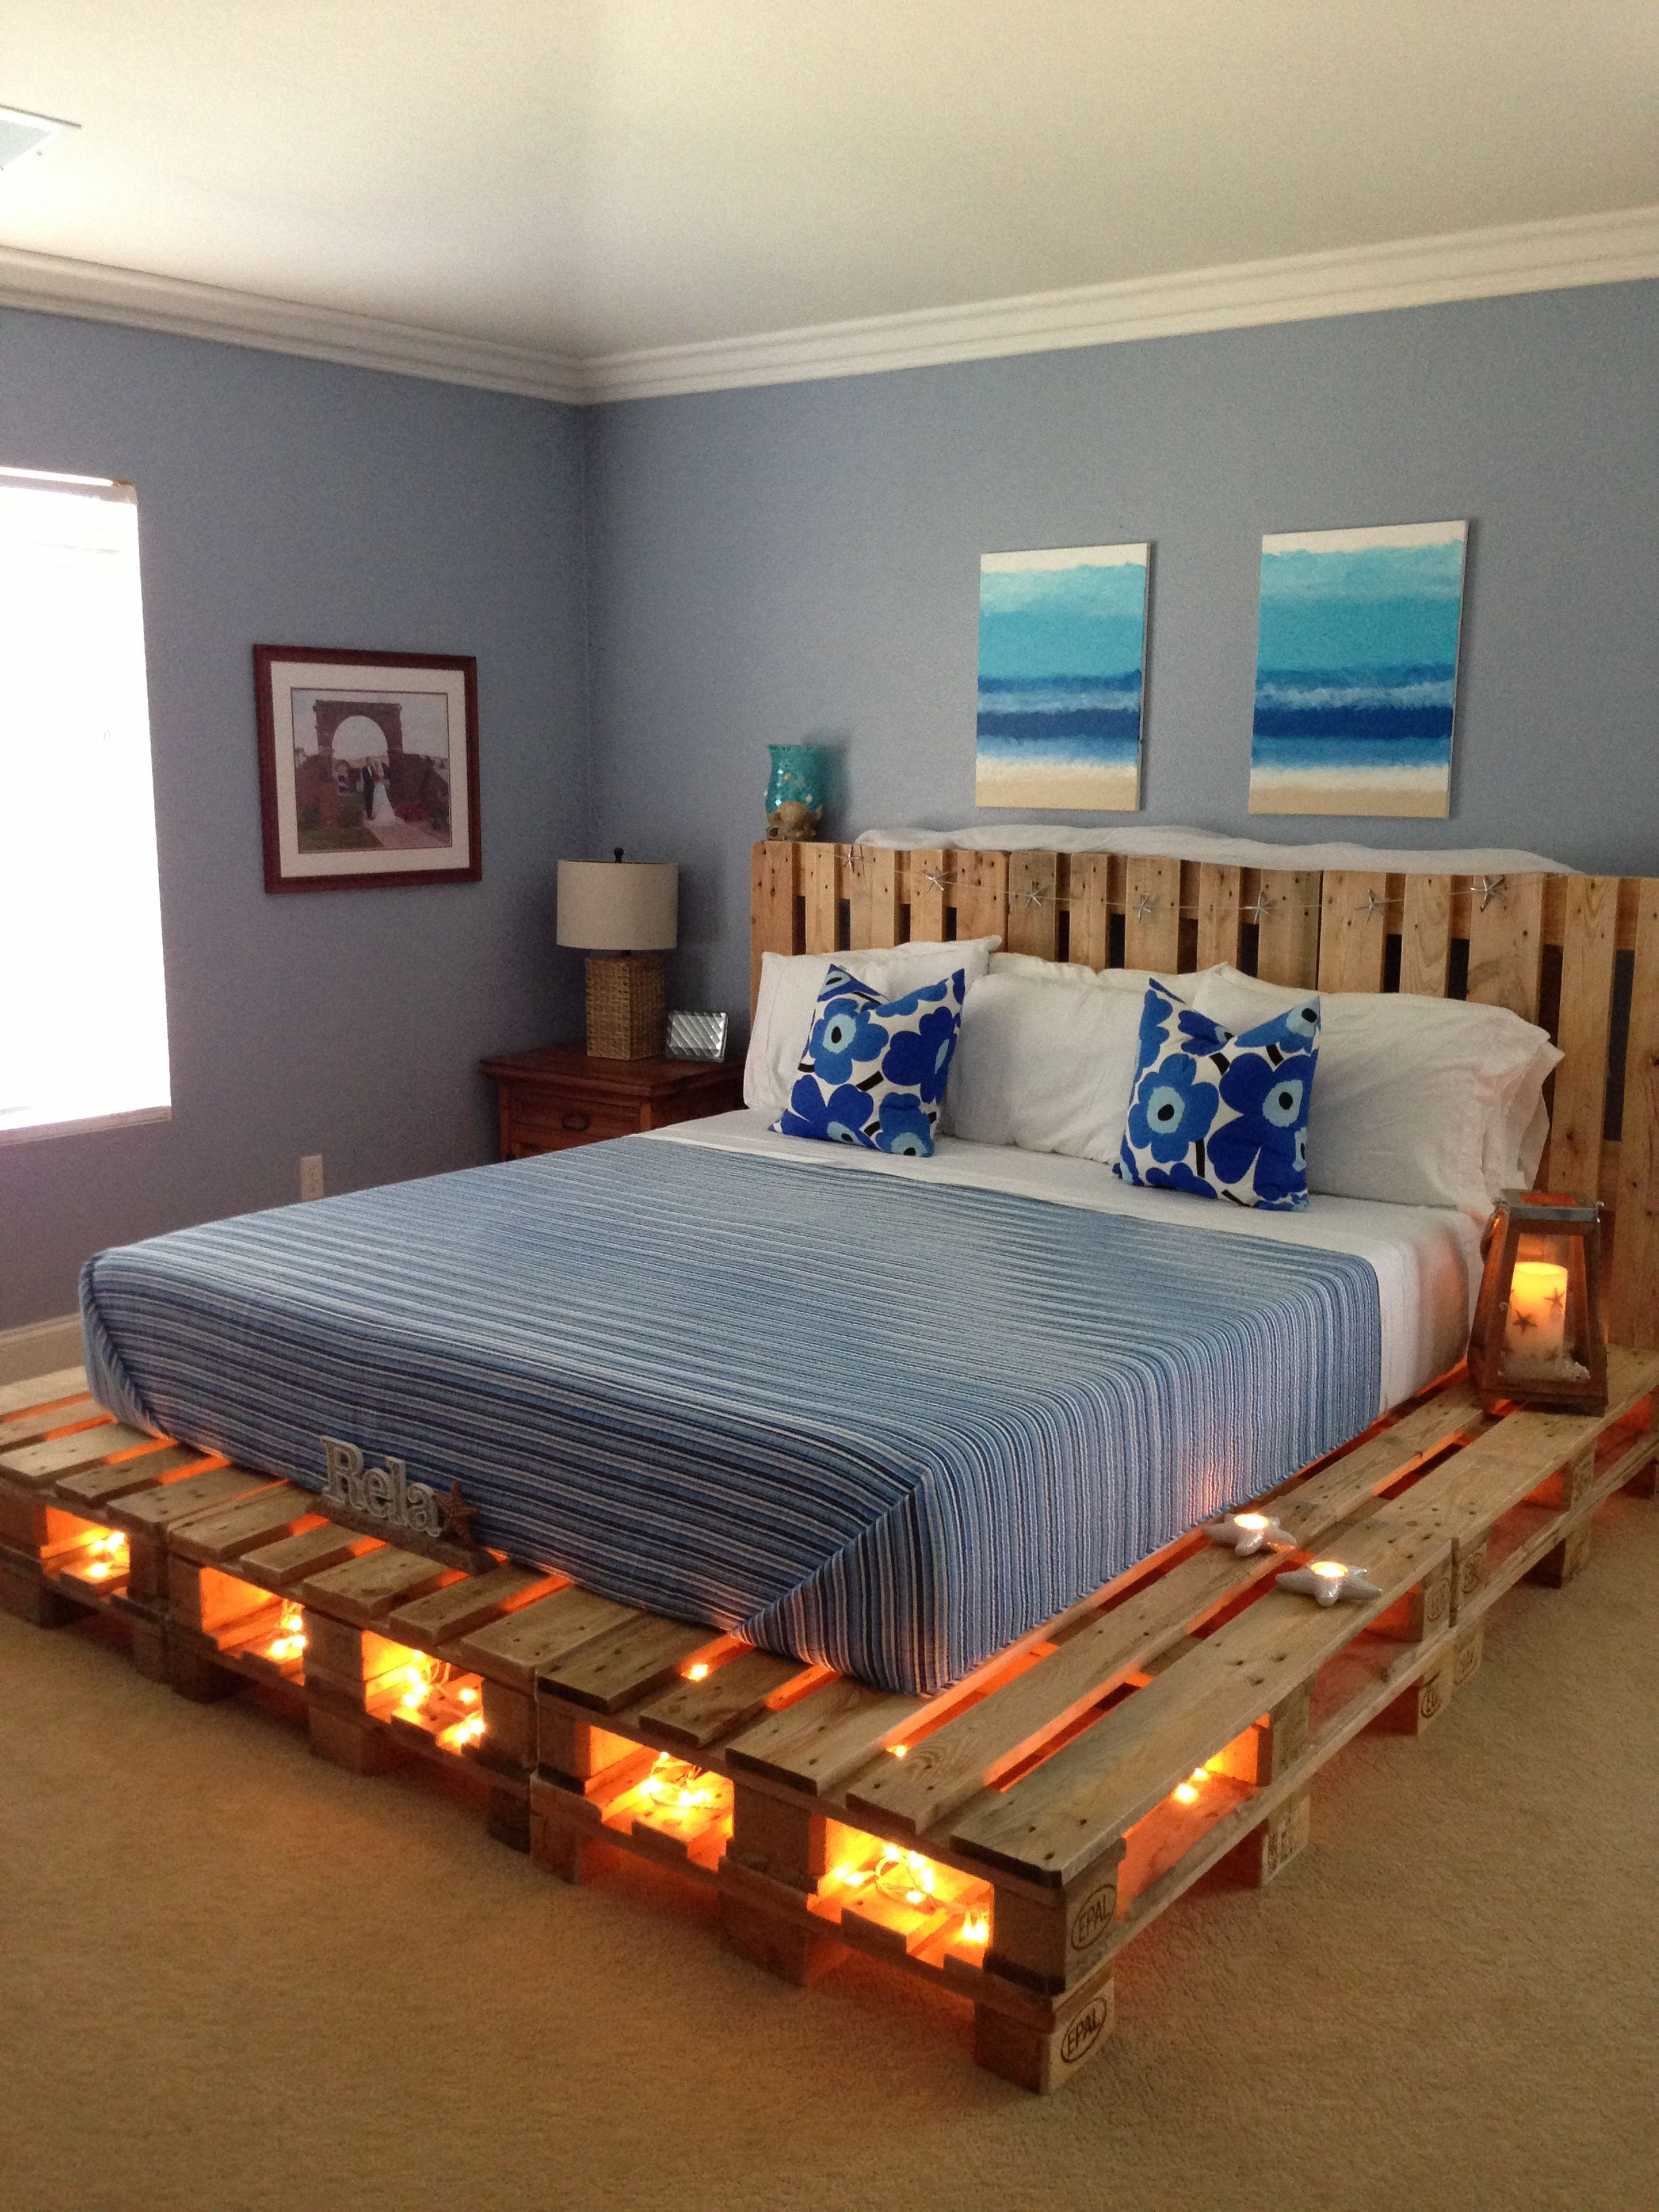 Pallet Beds Are Cool Diy Pallet Furniture Diy Pallet Bed